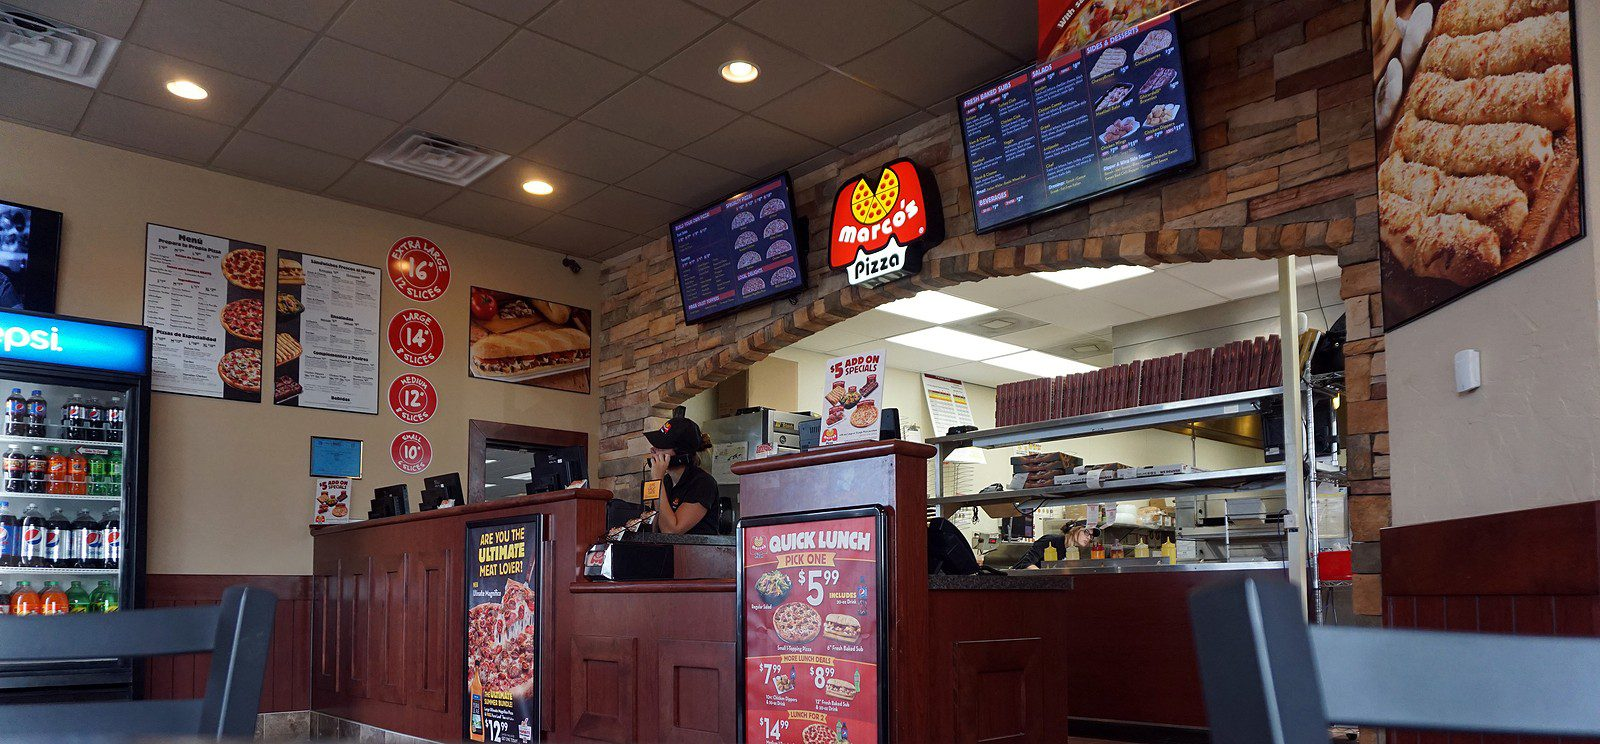 Marco's Pizza – 86% Wish to Eat Sandwich Flavor as a Pizza